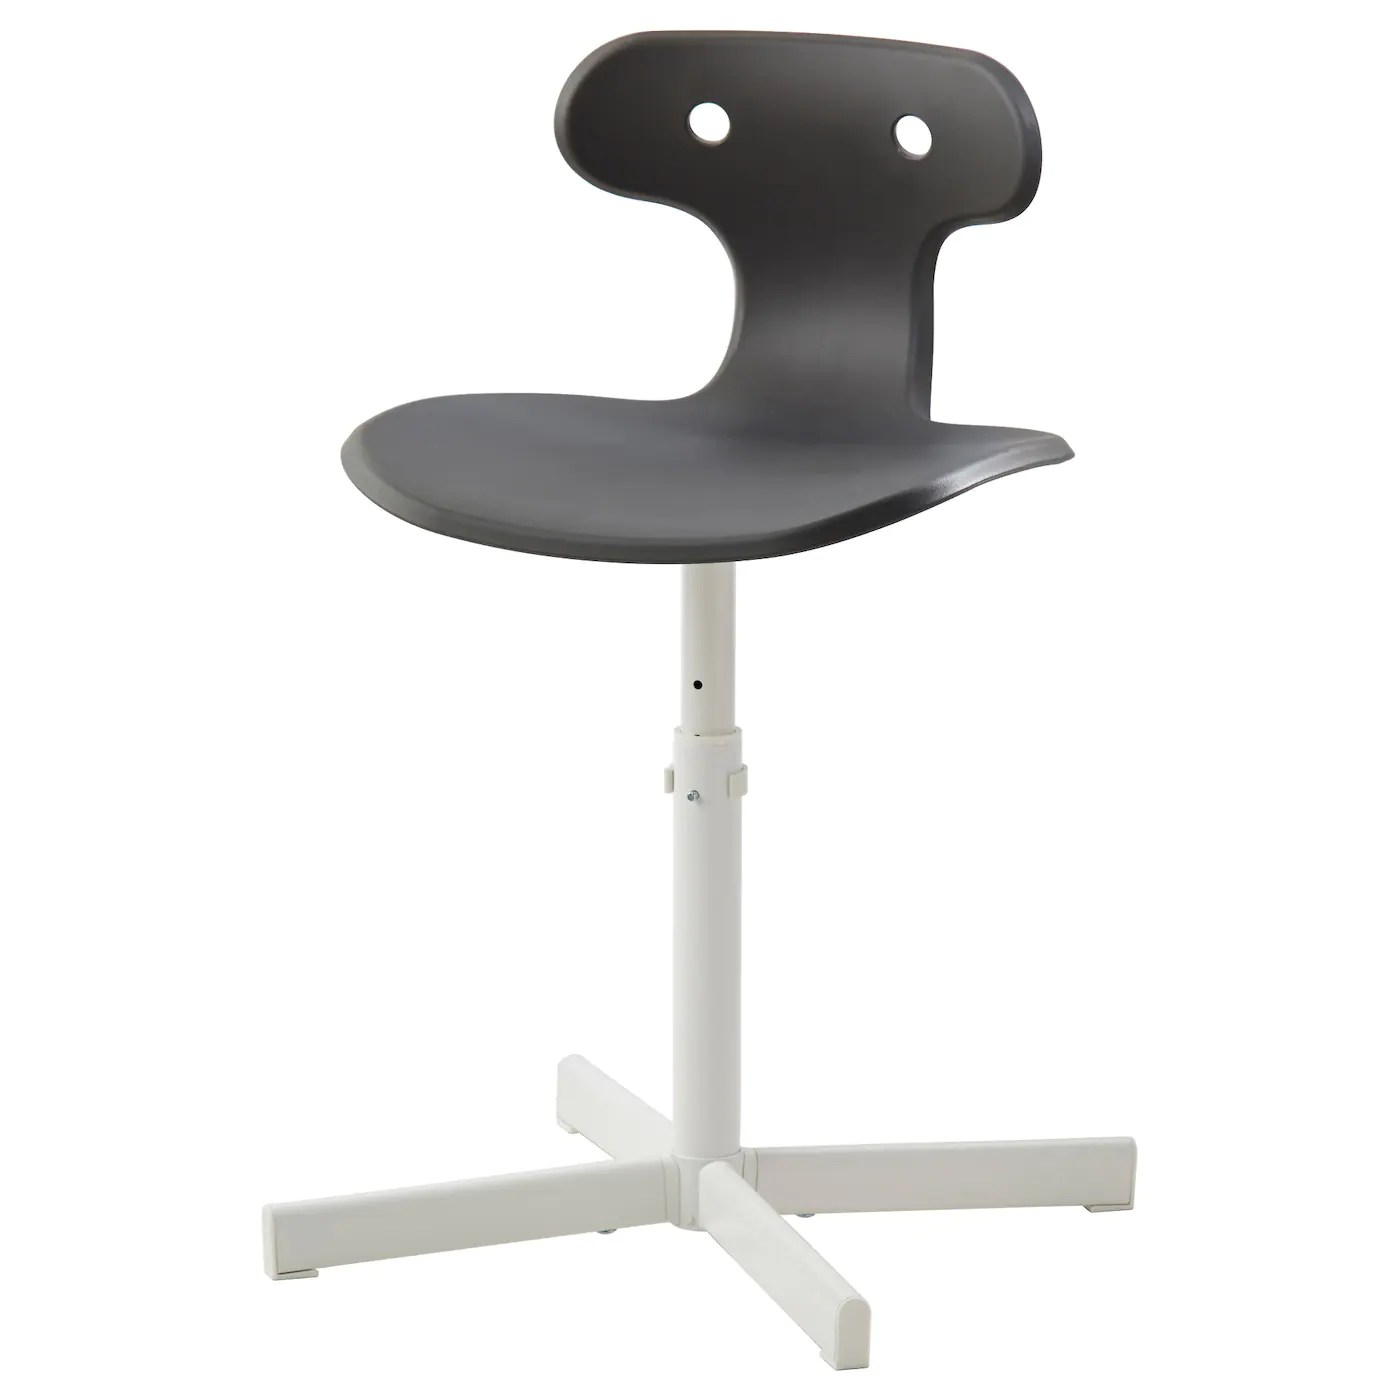 Makro Sillas De Oficina Desk Chairs Office Seating Ikea